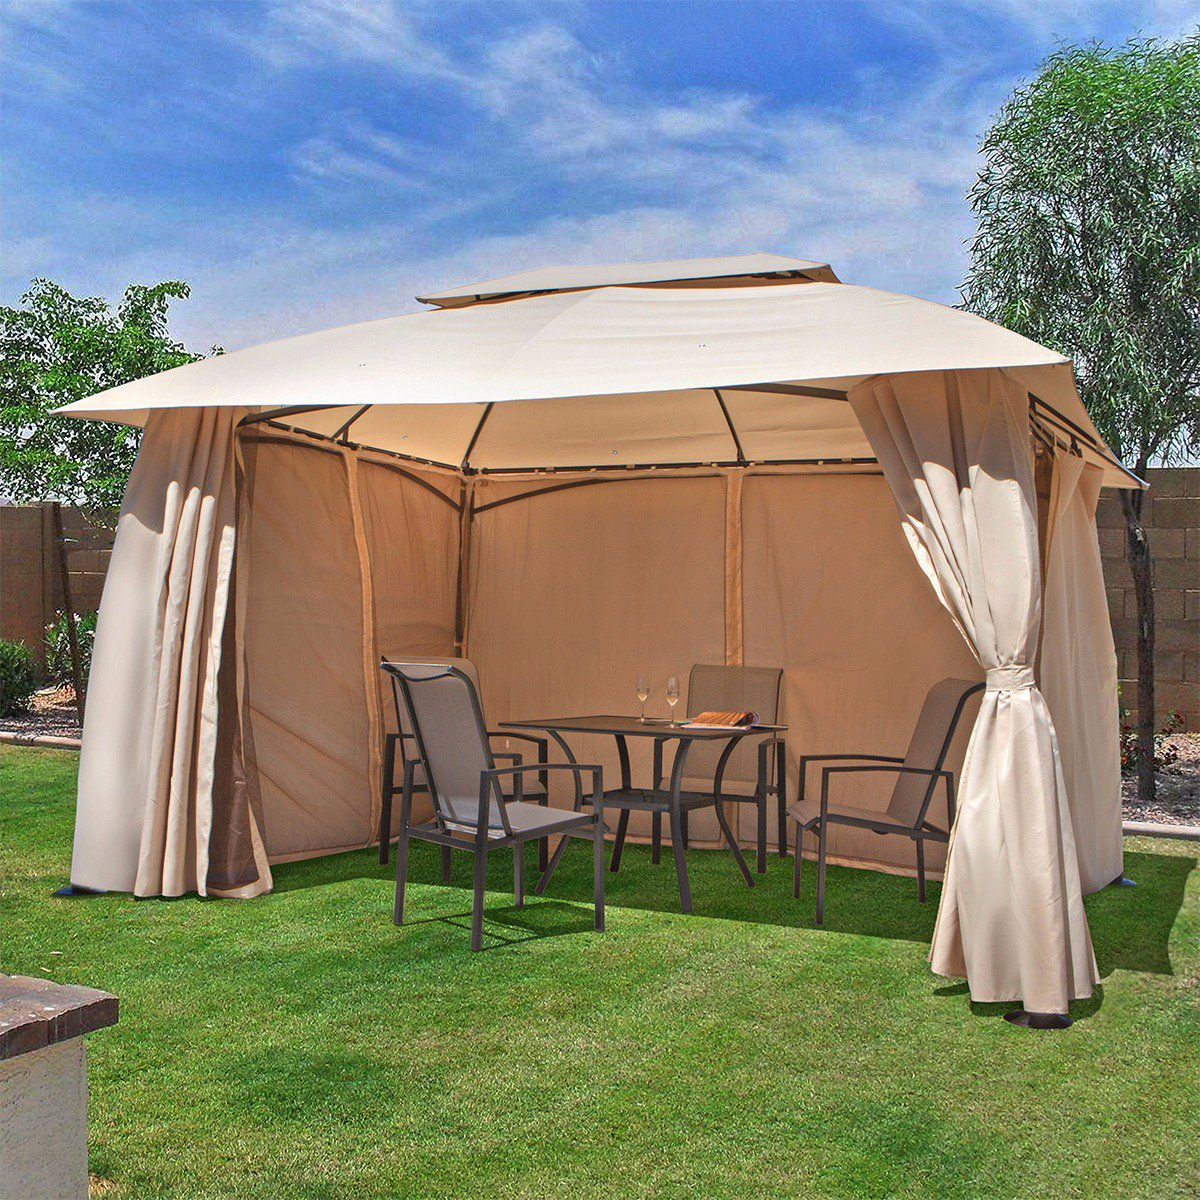 10u0027 x 13u0027 Outdoor Backyard Patio Gazebo Canopy Tent with Netting & 10u0027 x 13u0027 Outdoor Backyard Patio Gazebo Canopy Tent with Netting ...